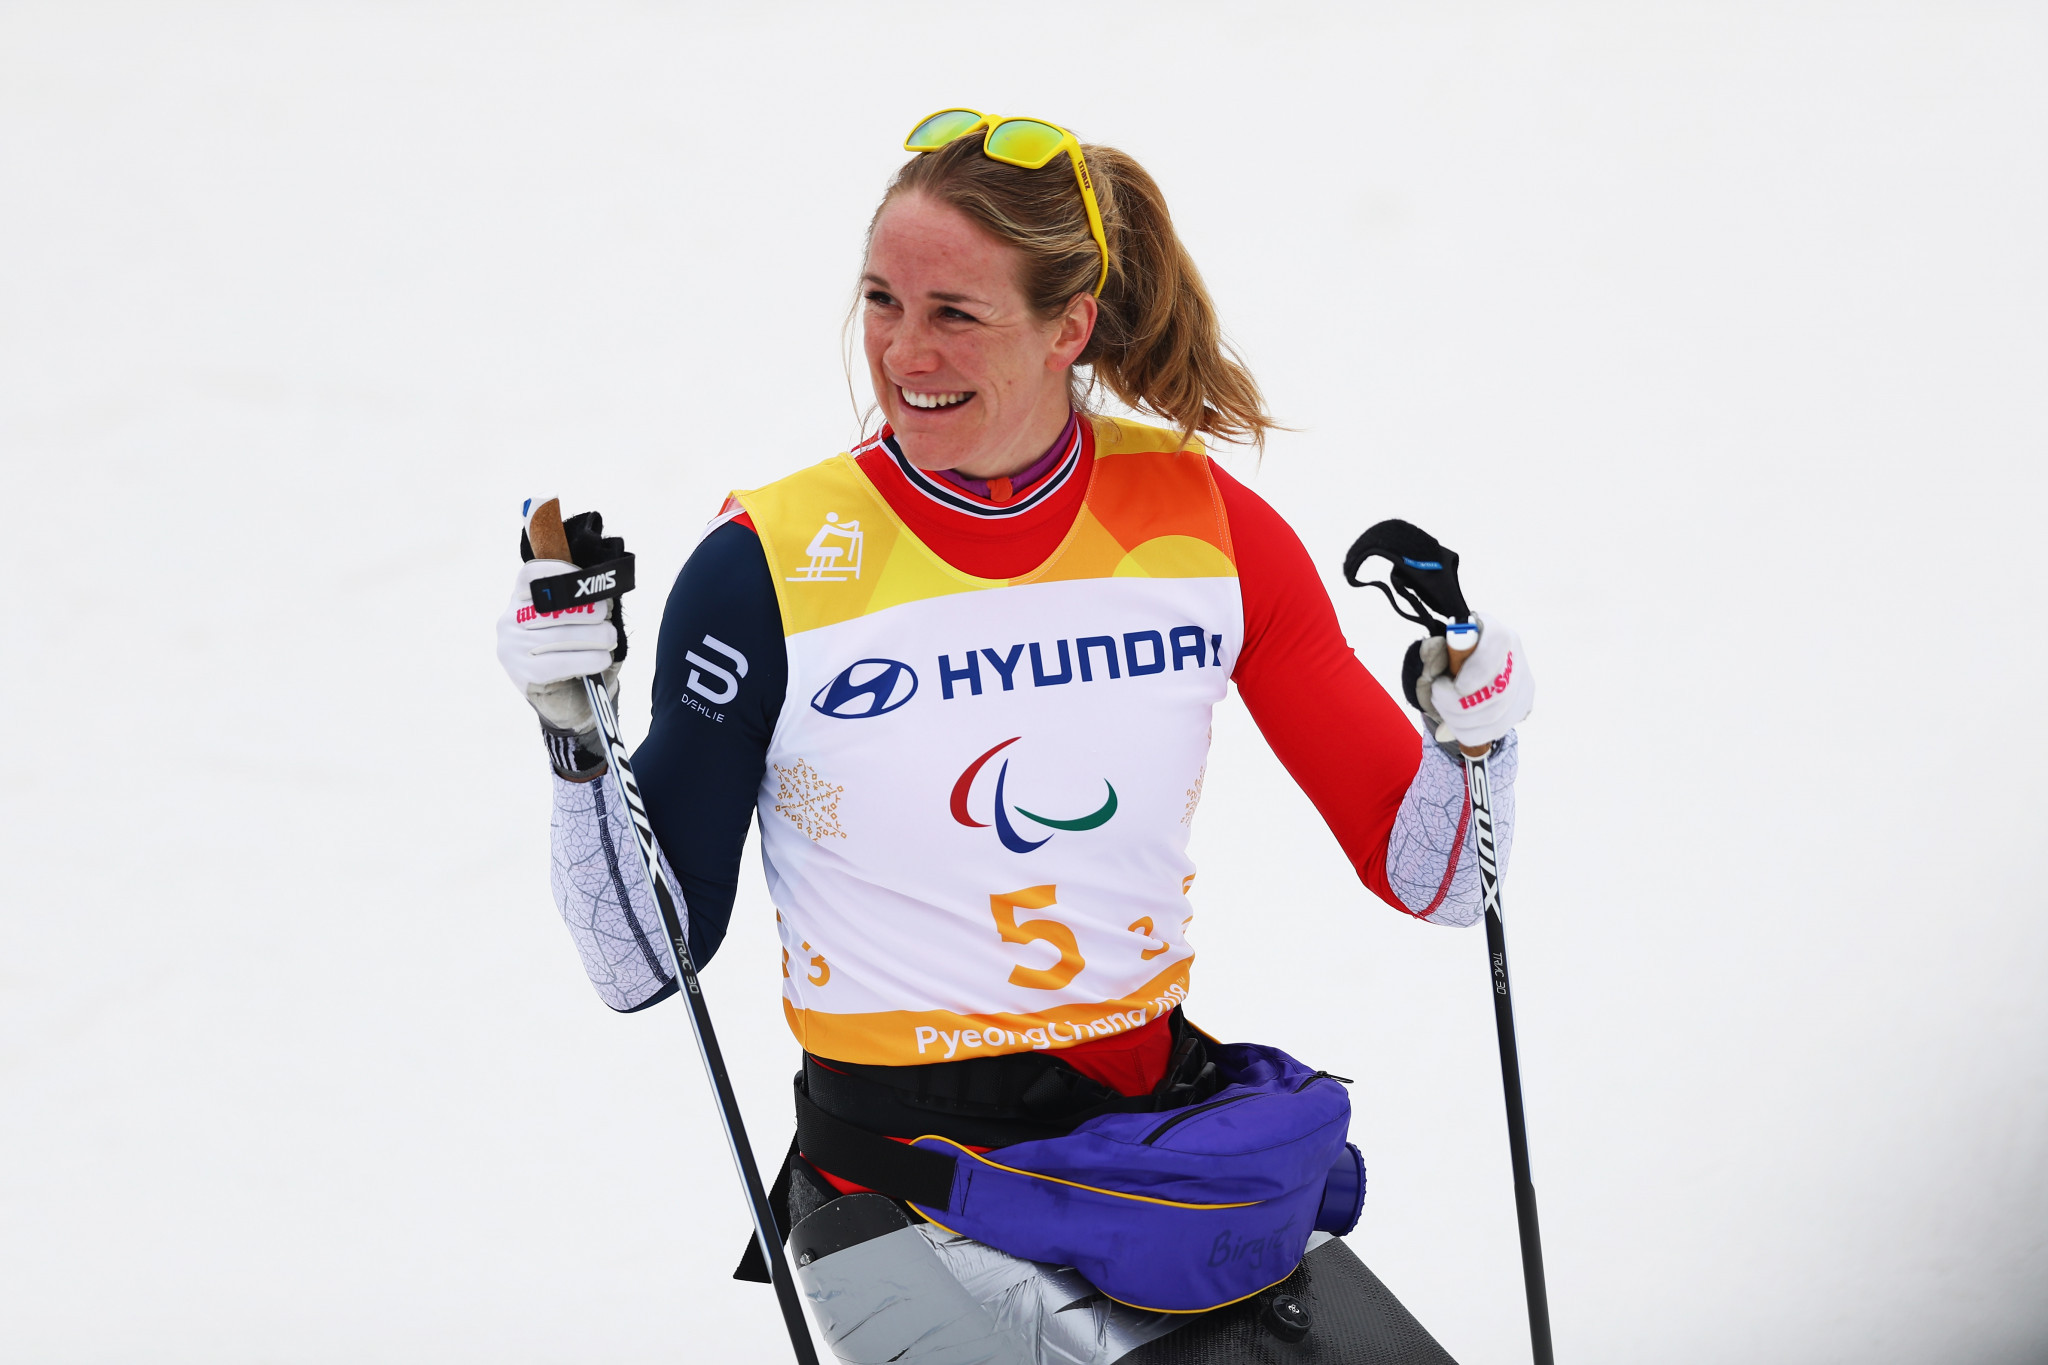 Birgit Skarstein competes in cross-country skiing and rowing ©Getty Images